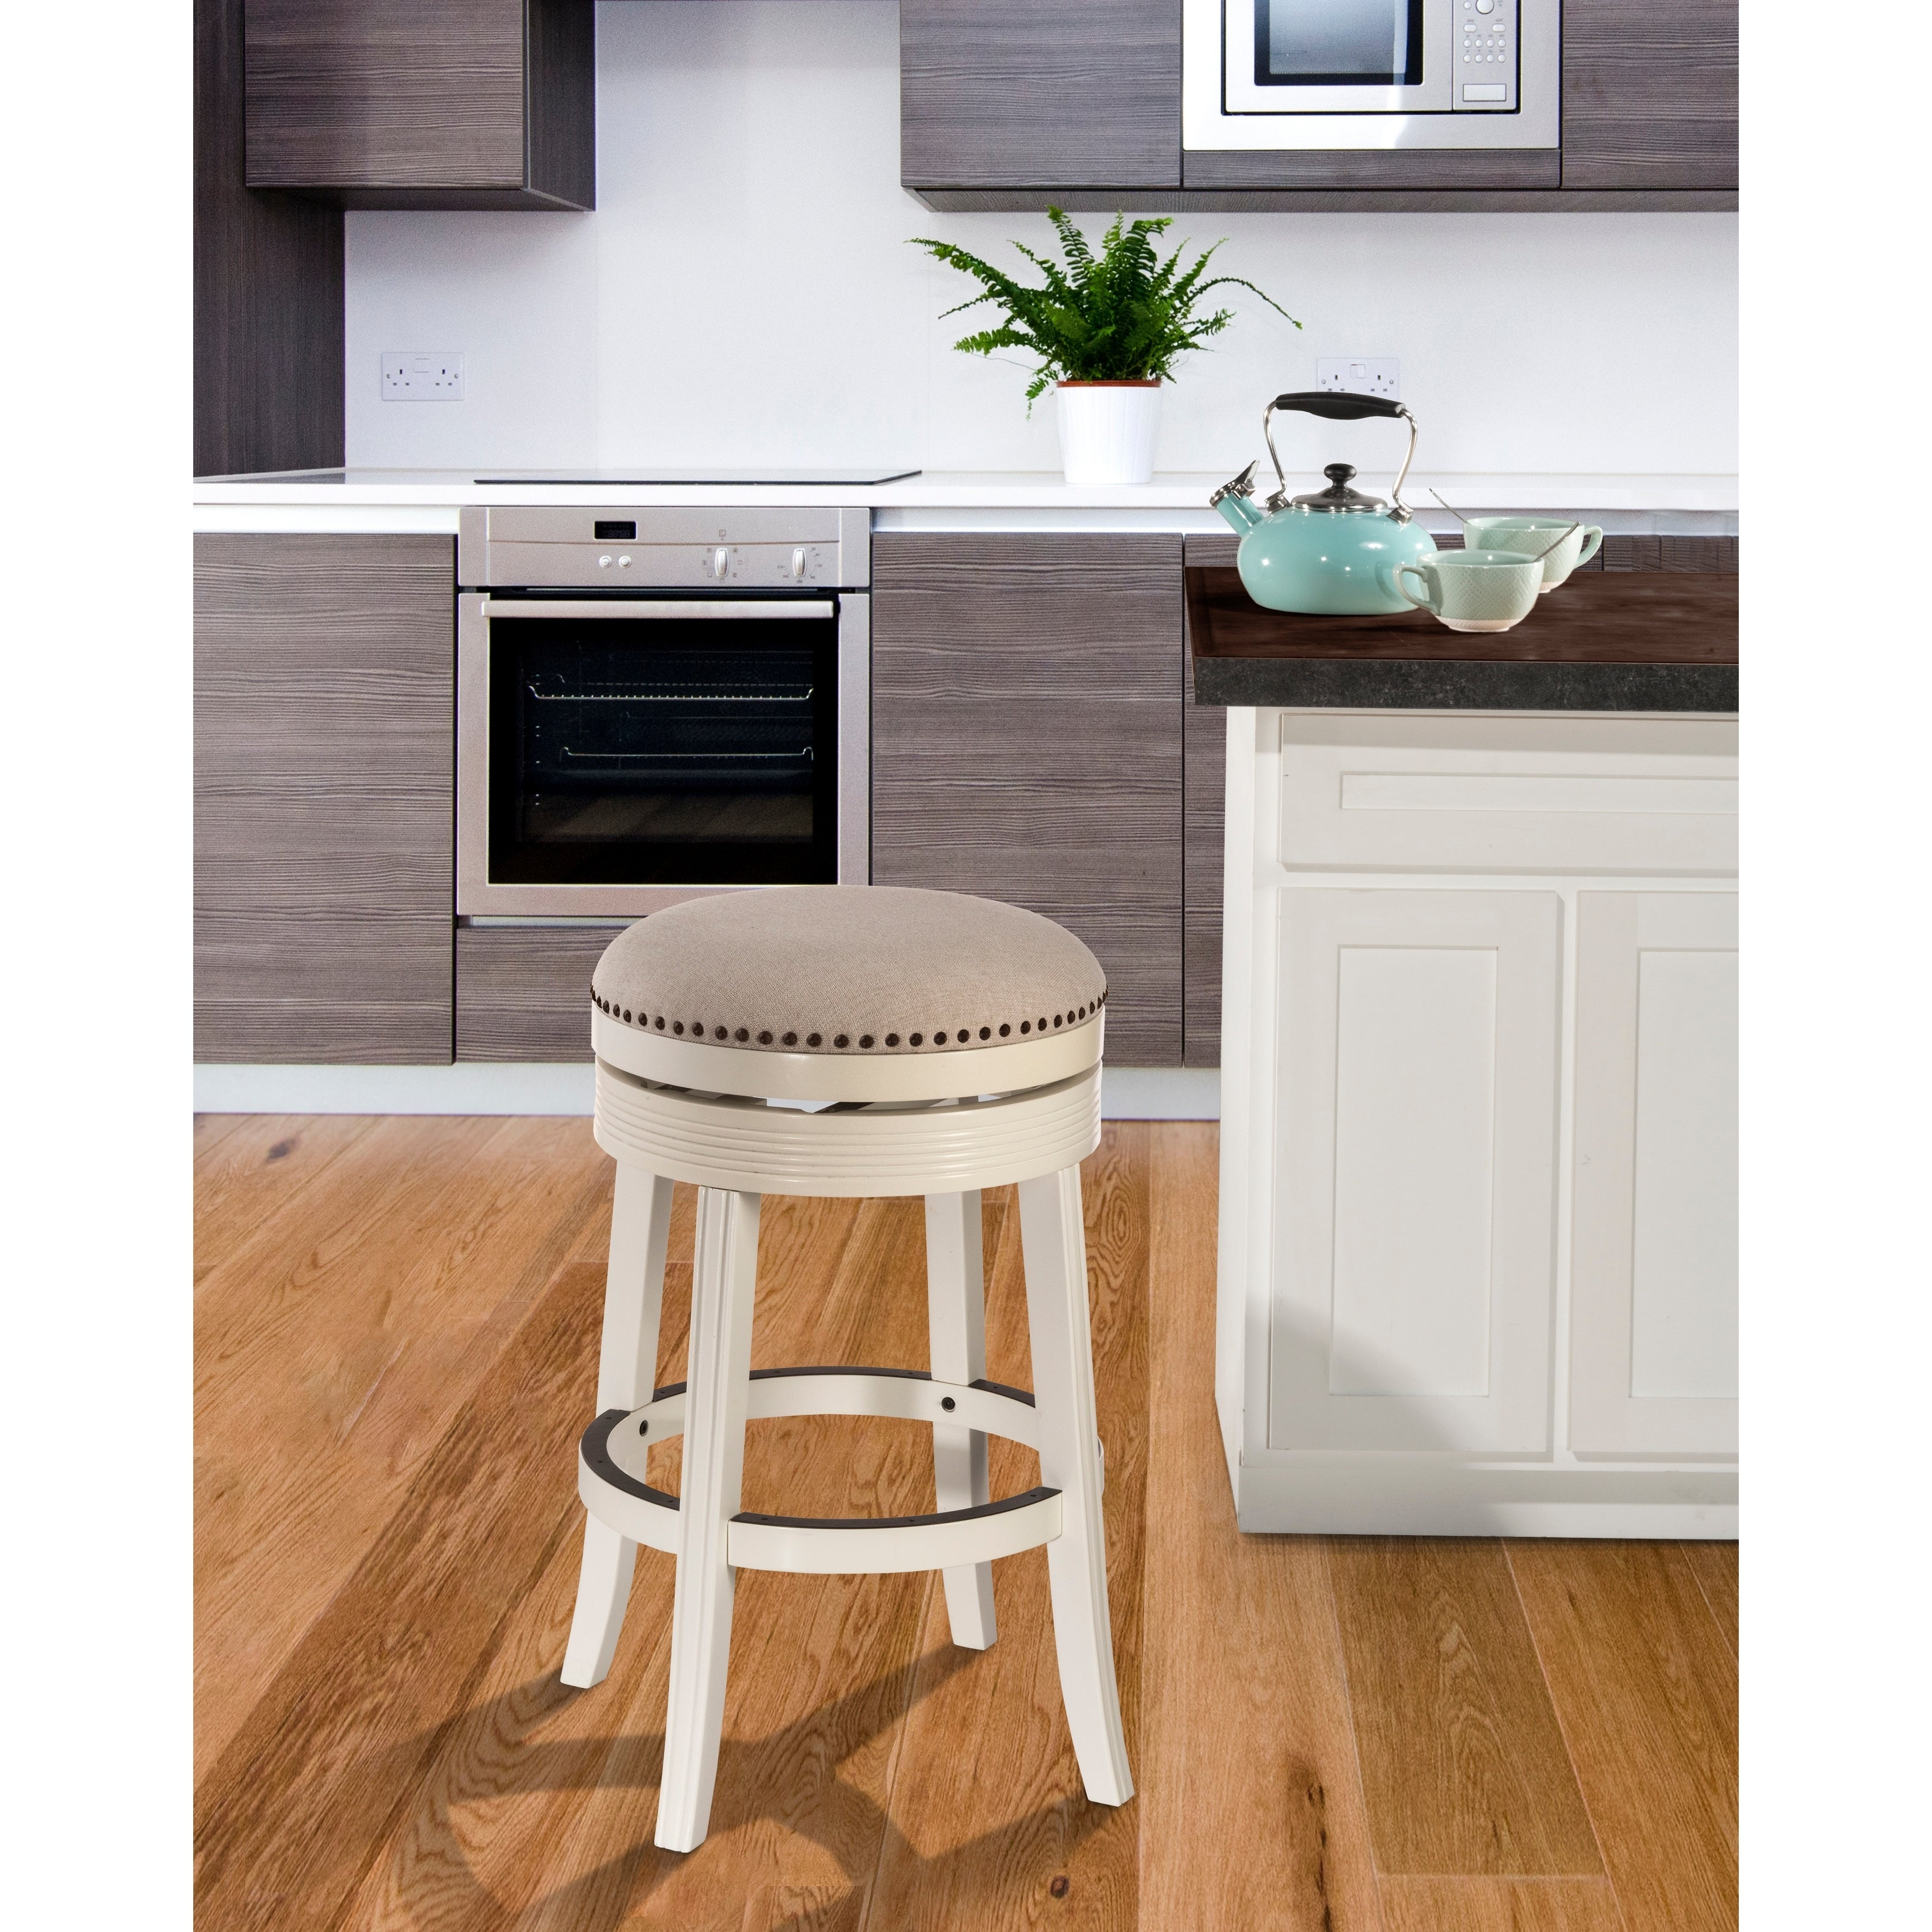 Astounding Copper Grove Curlew White Finished Wood Backless Swivel Bar Stool Gmtry Best Dining Table And Chair Ideas Images Gmtryco